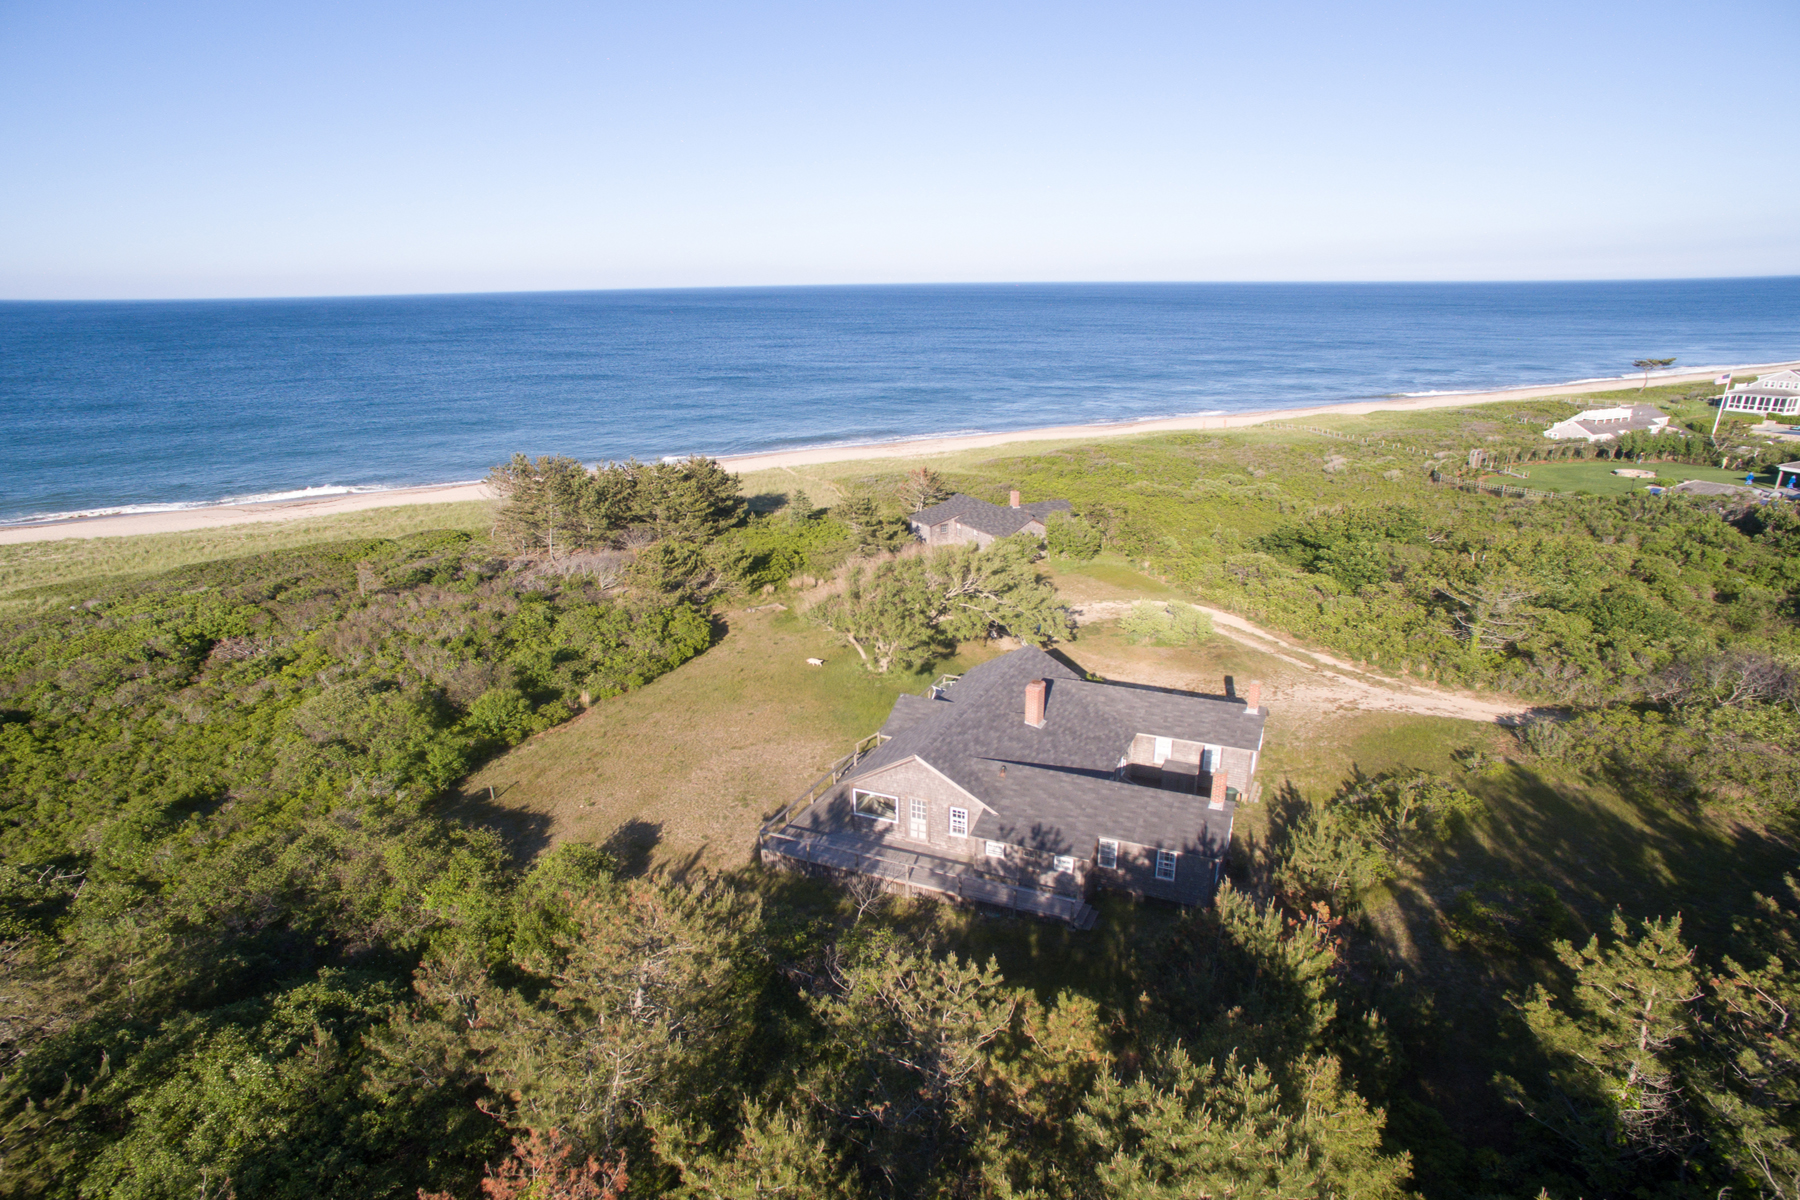 Casa Unifamiliar por un Venta en Quiet Stretch of Paradise 17 Squam Road Nantucket, Massachusetts 02554 Estados Unidos